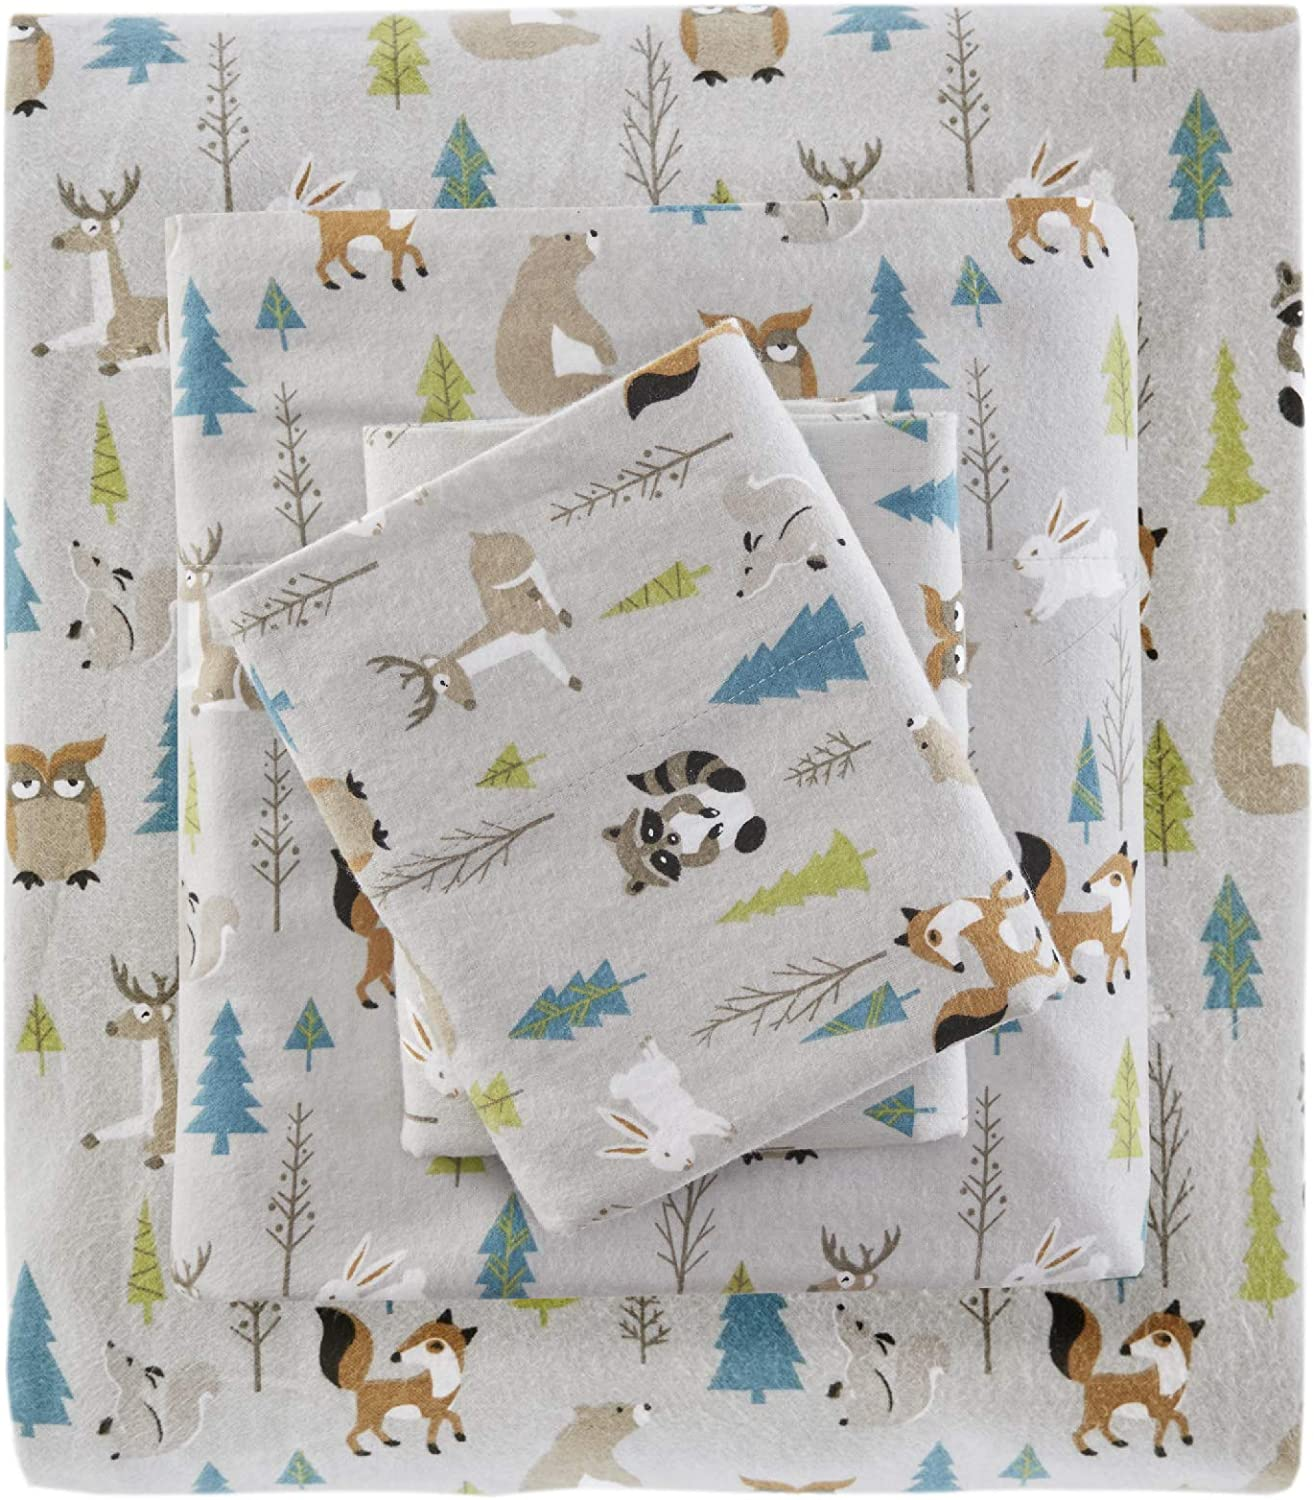 True North by Sleep Philosophy Cozy Flannel 100% Cotton Ultra Soft Cold Weather Sheet Set Bedding, Twin, Multi Forest Animals 3 Piece